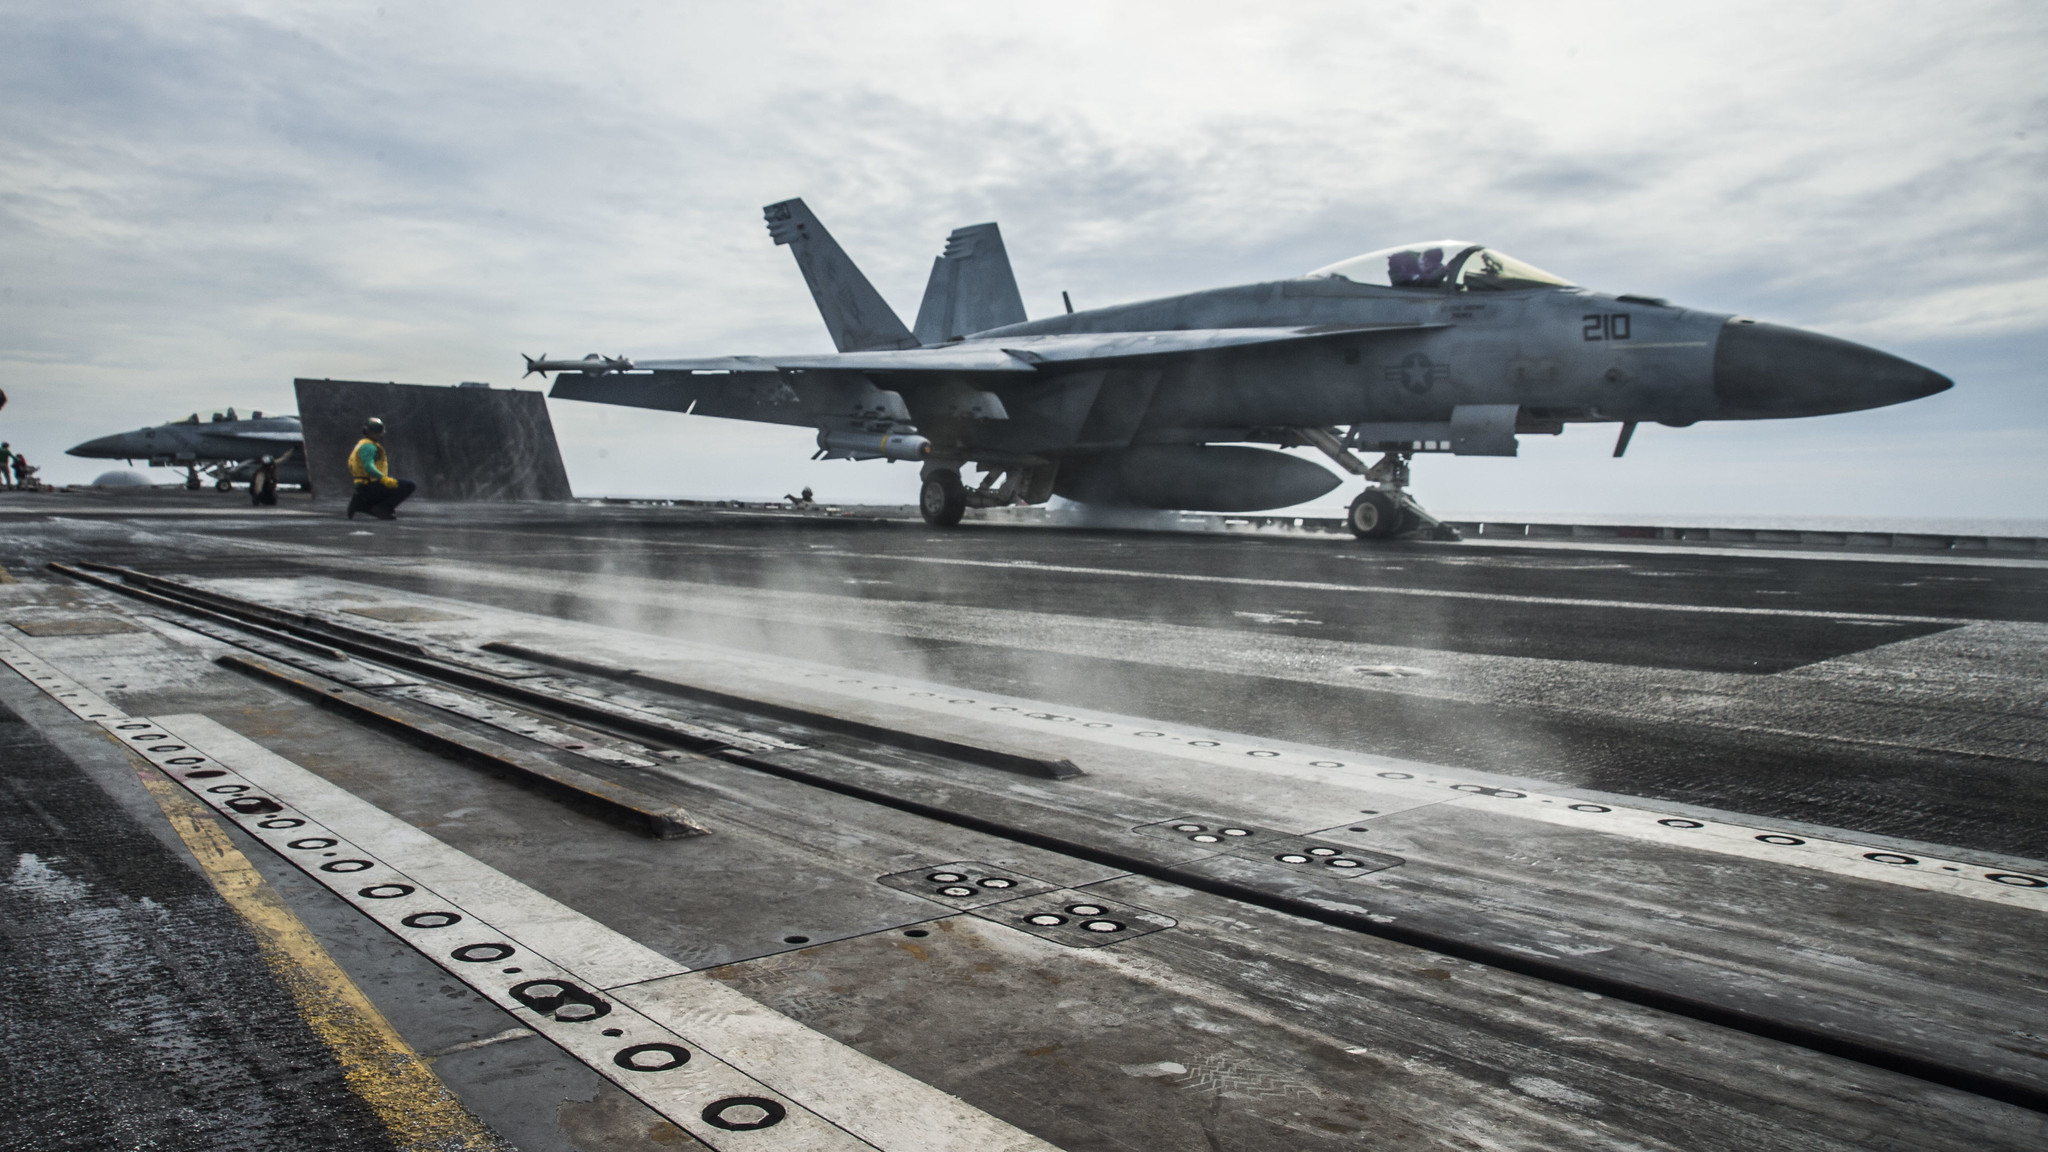 An F/A-18E launches off the flight deck of the aircraft carrier USS Ronald Reagan (CVN 76) on Oct. 15, 2020, while conducting security and stability operations in the South China Sea. (MC2 Codie L. Soule/Navy)